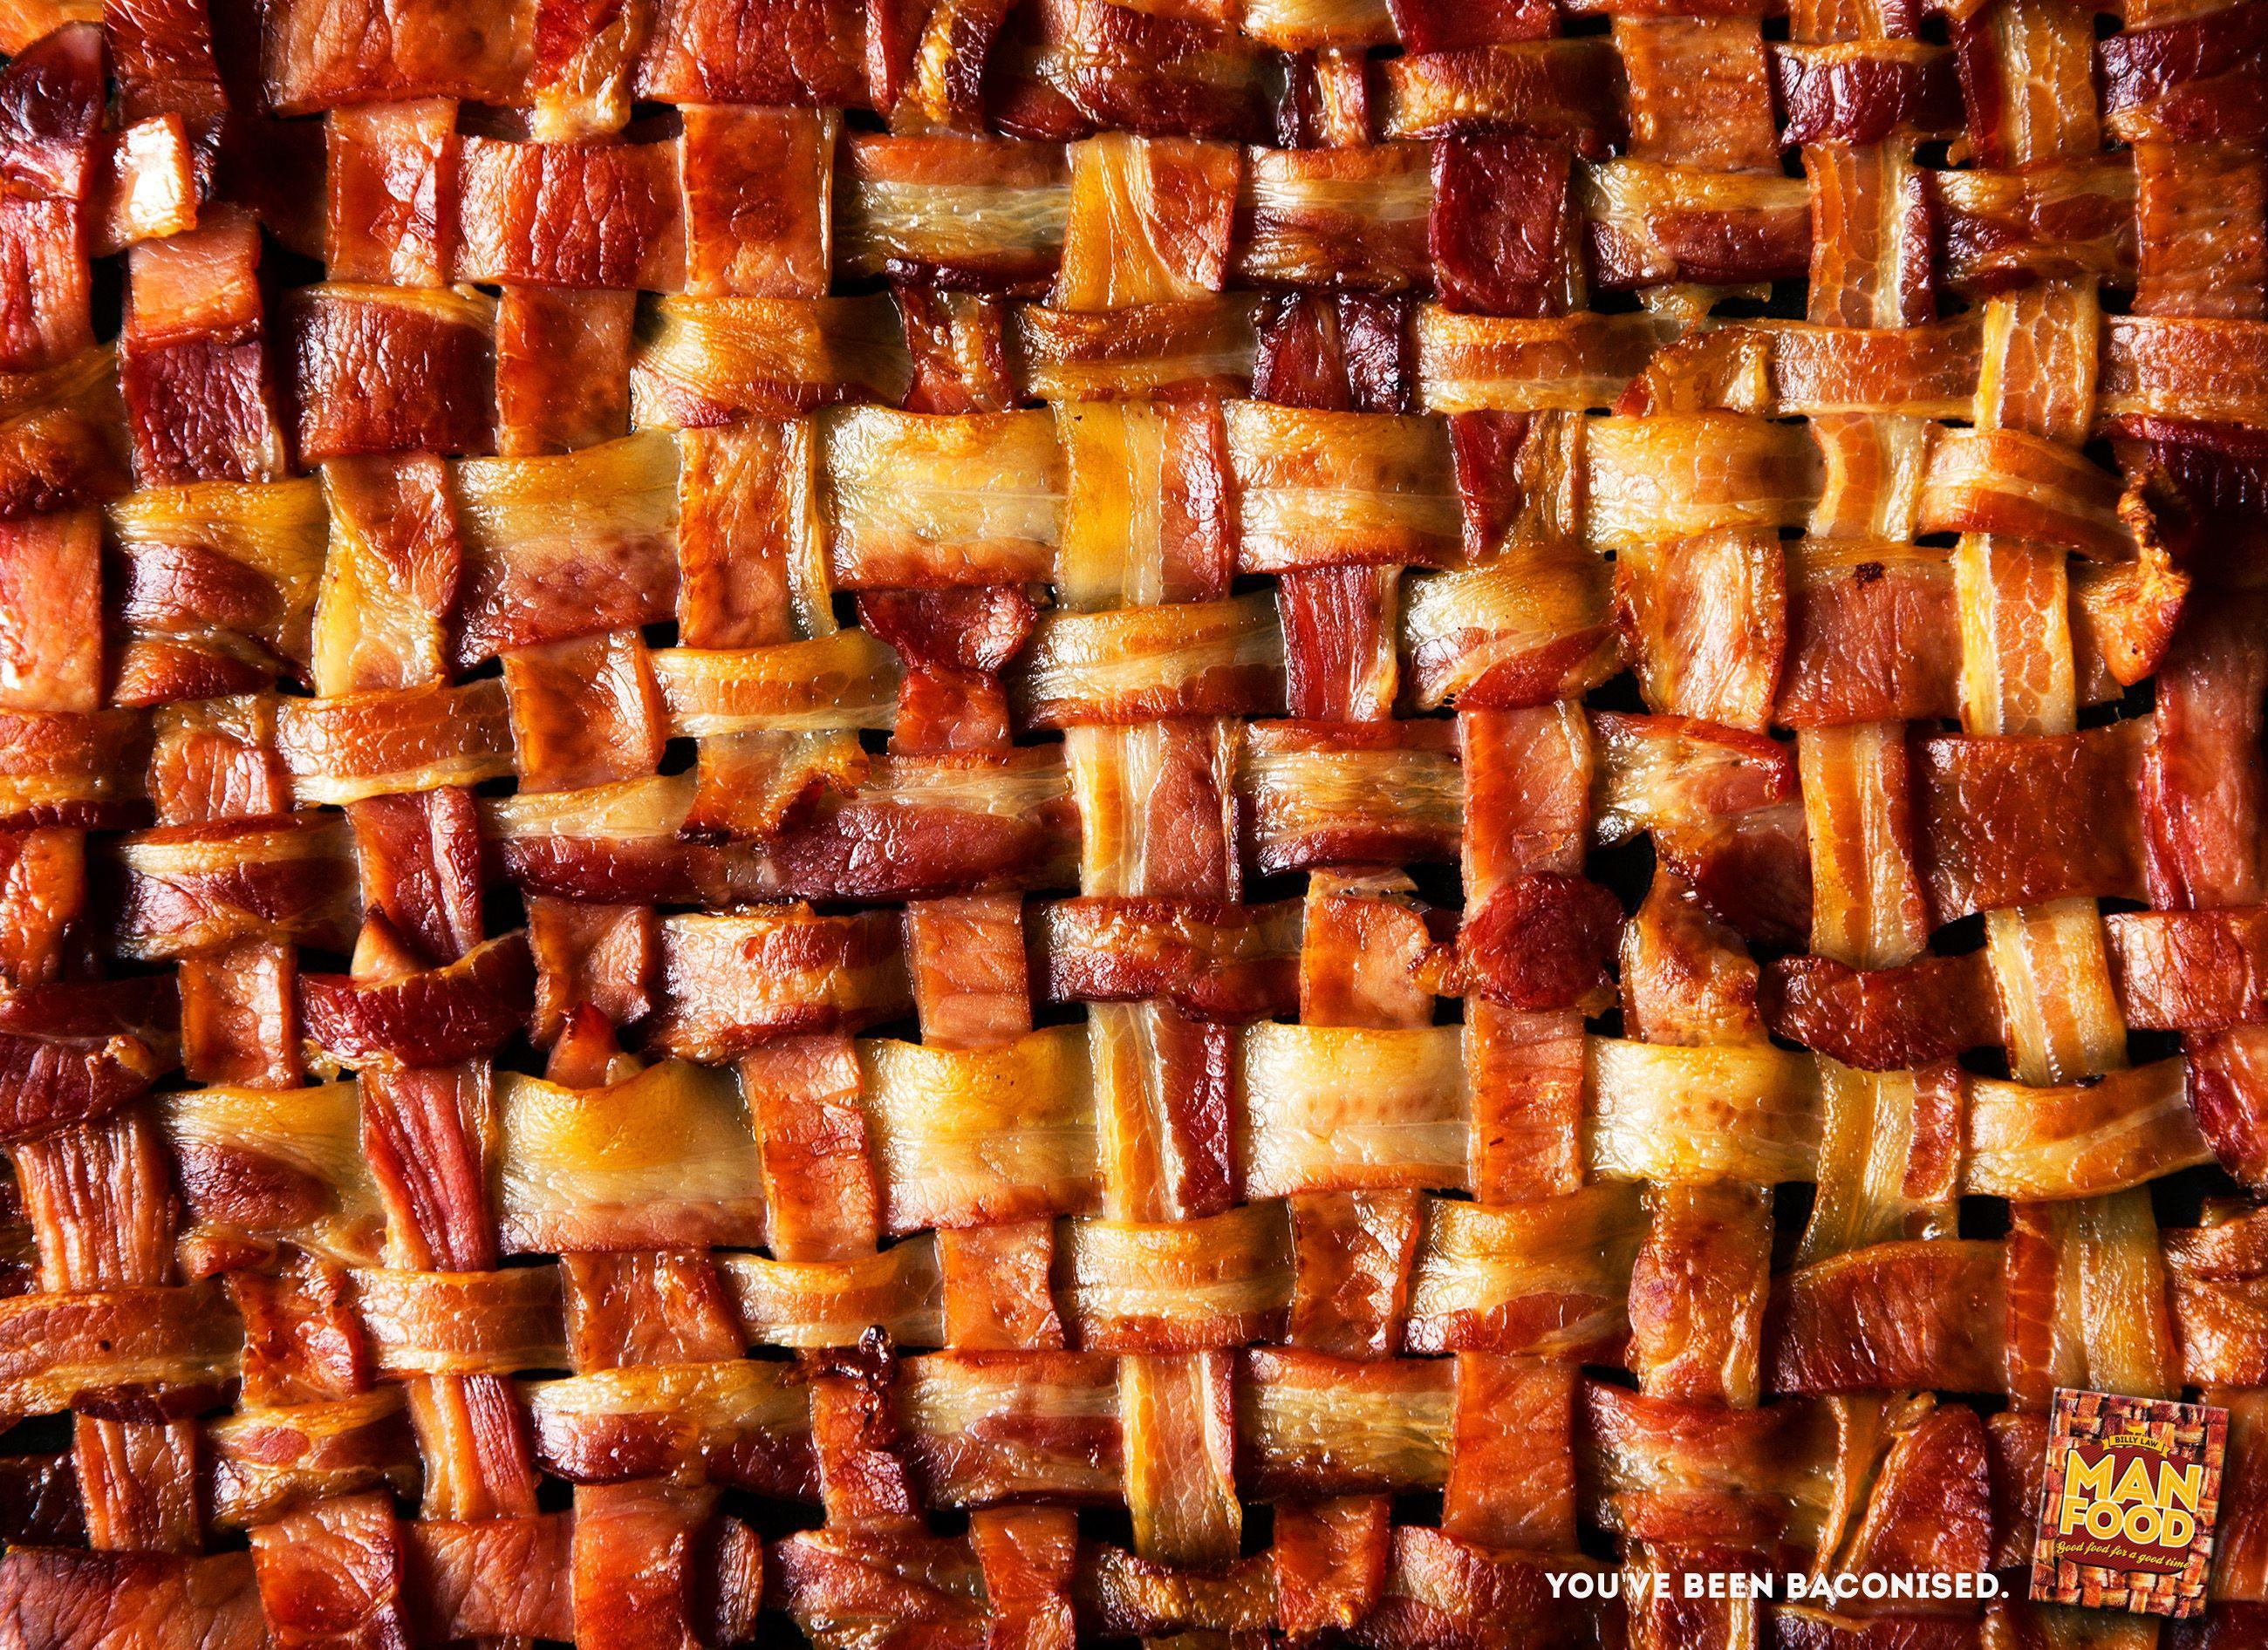 Bacon Wallpapers - Top Free Bacon Backgrounds - WallpaperAccess